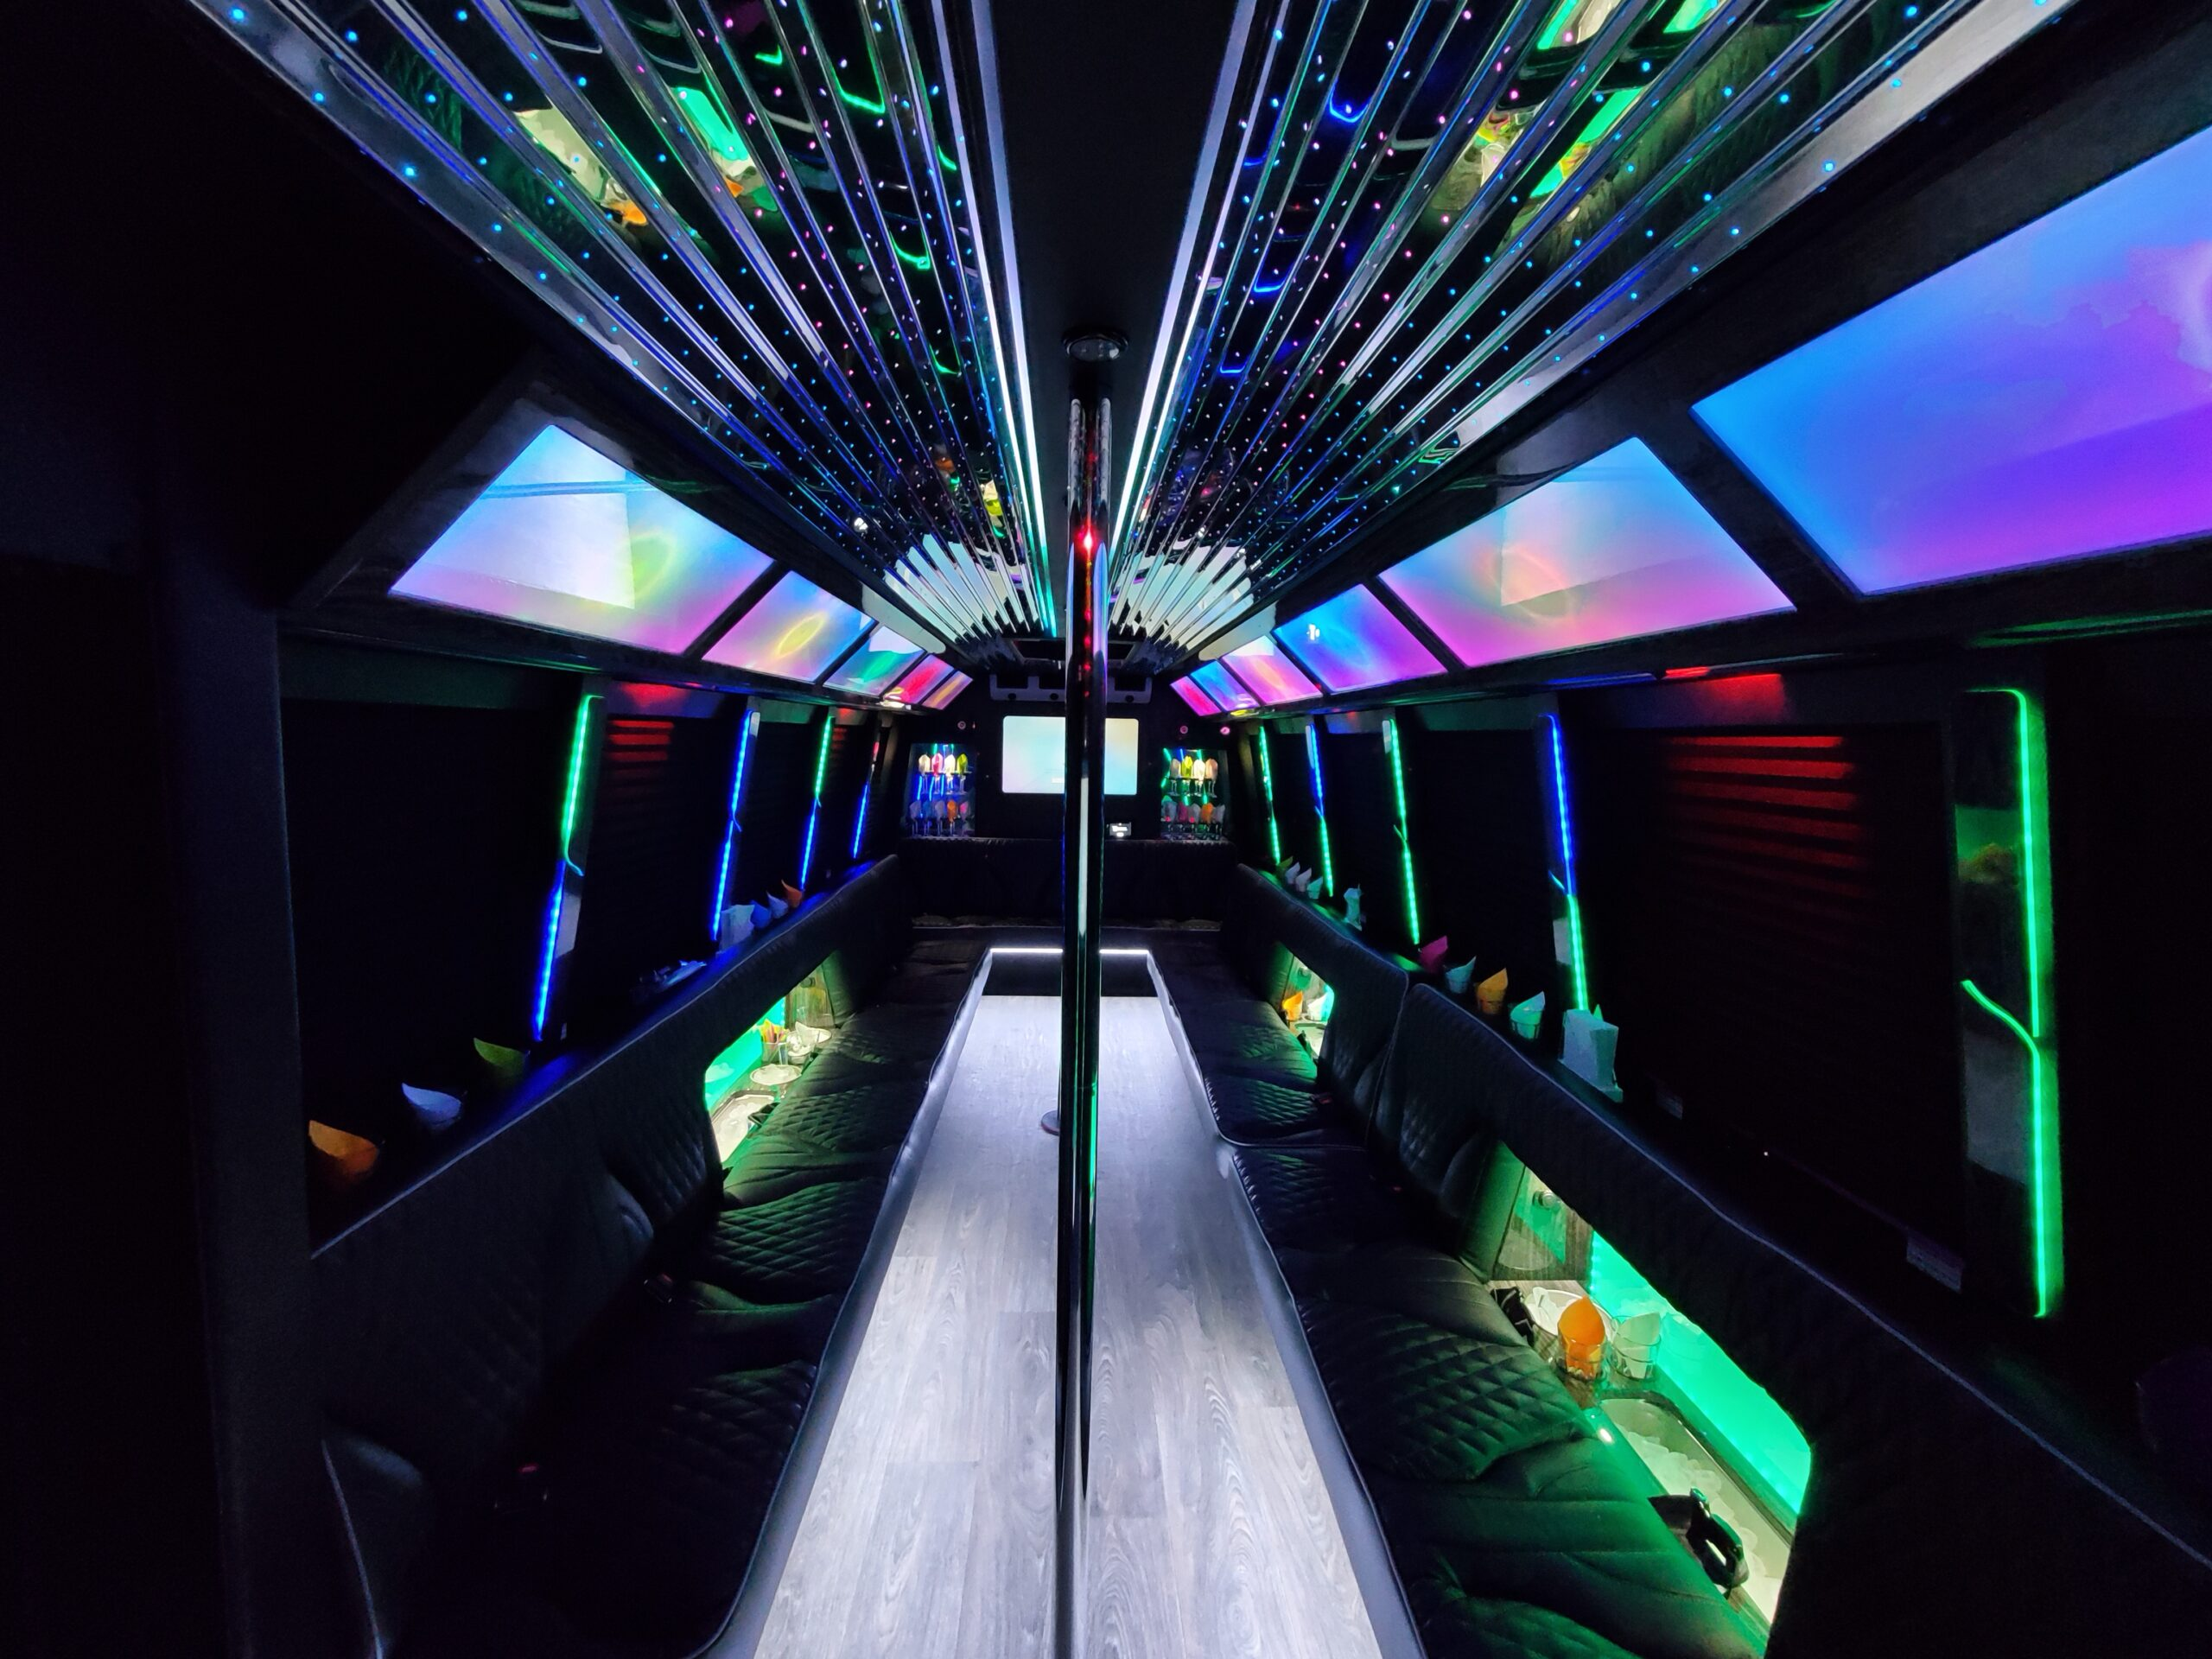 Dicko Transportation 24 Passenger Party Bus with 3 bars